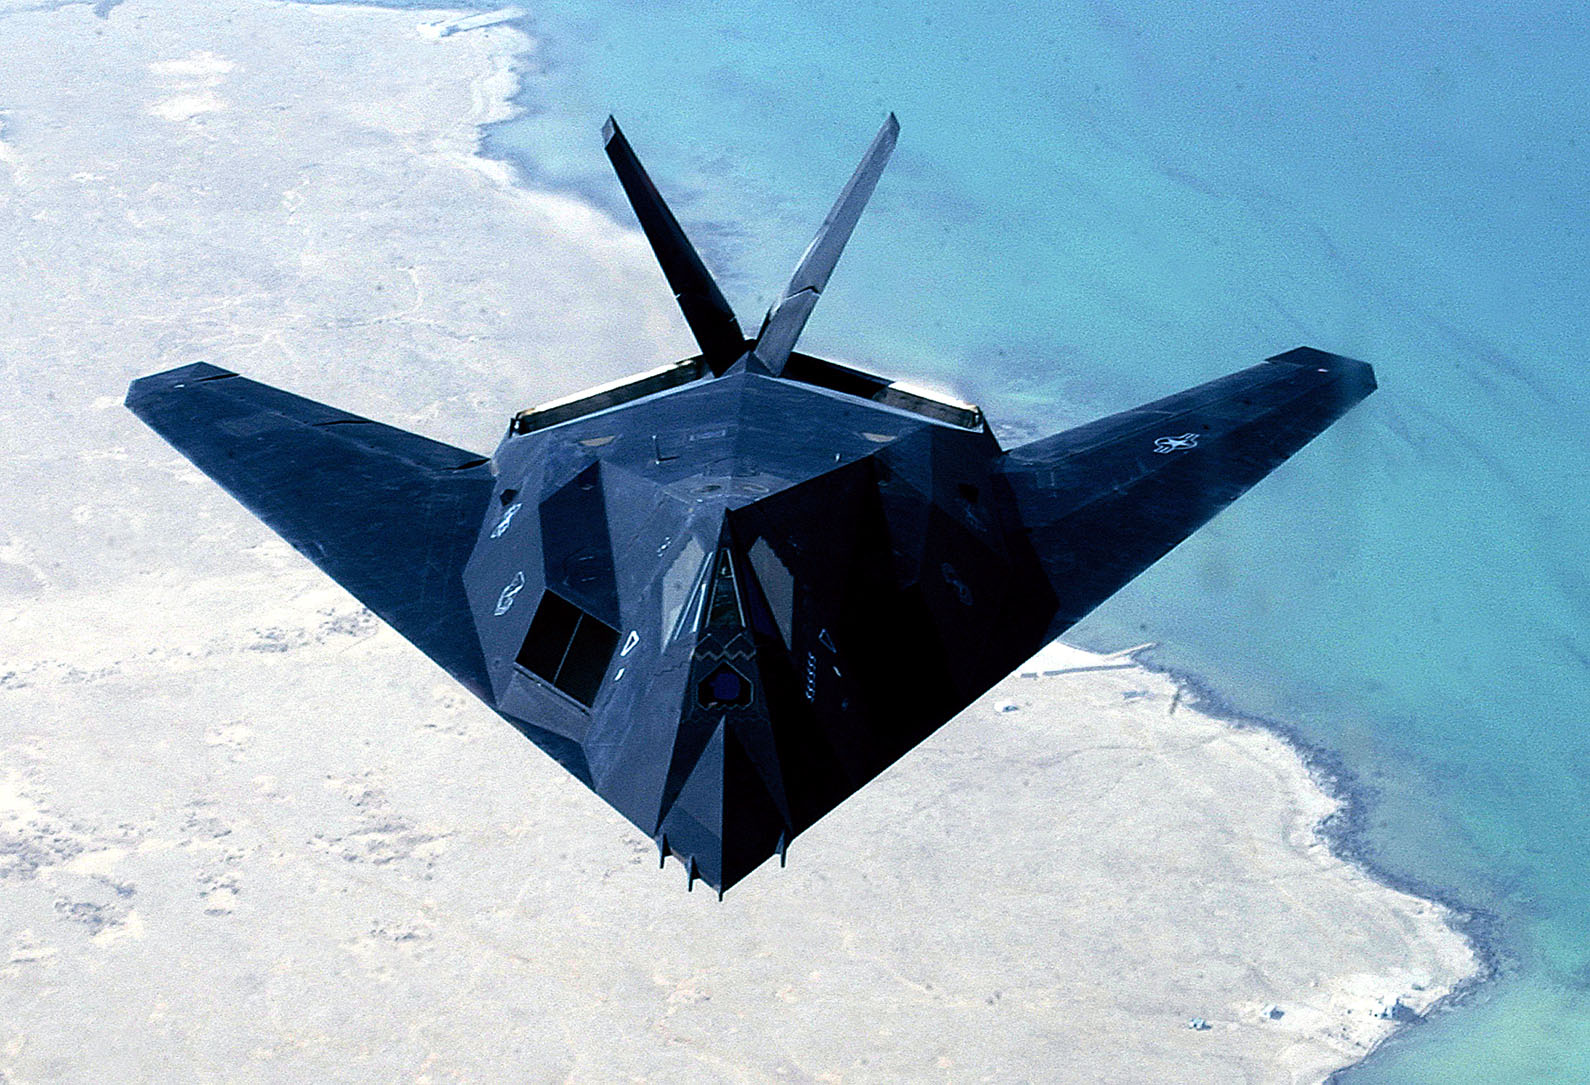 F-117 Nighthawk Stealth attack aircraft